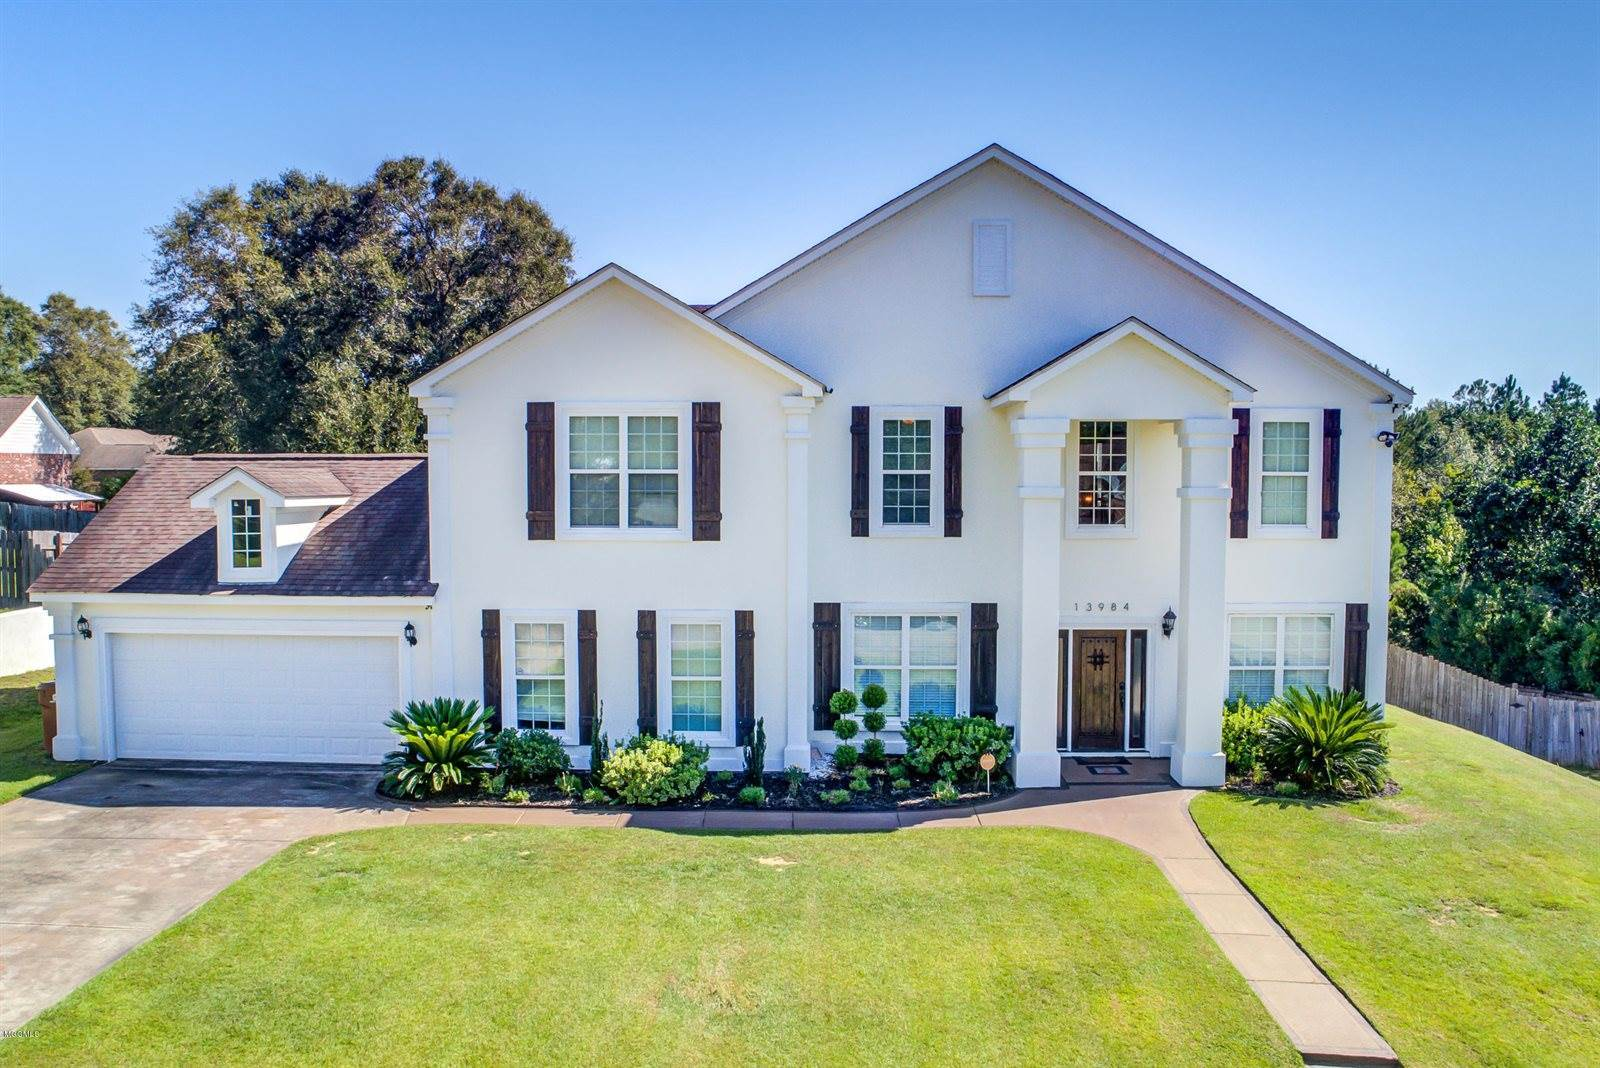 13984 N White Swan Cv, Gulfport, MS 39503